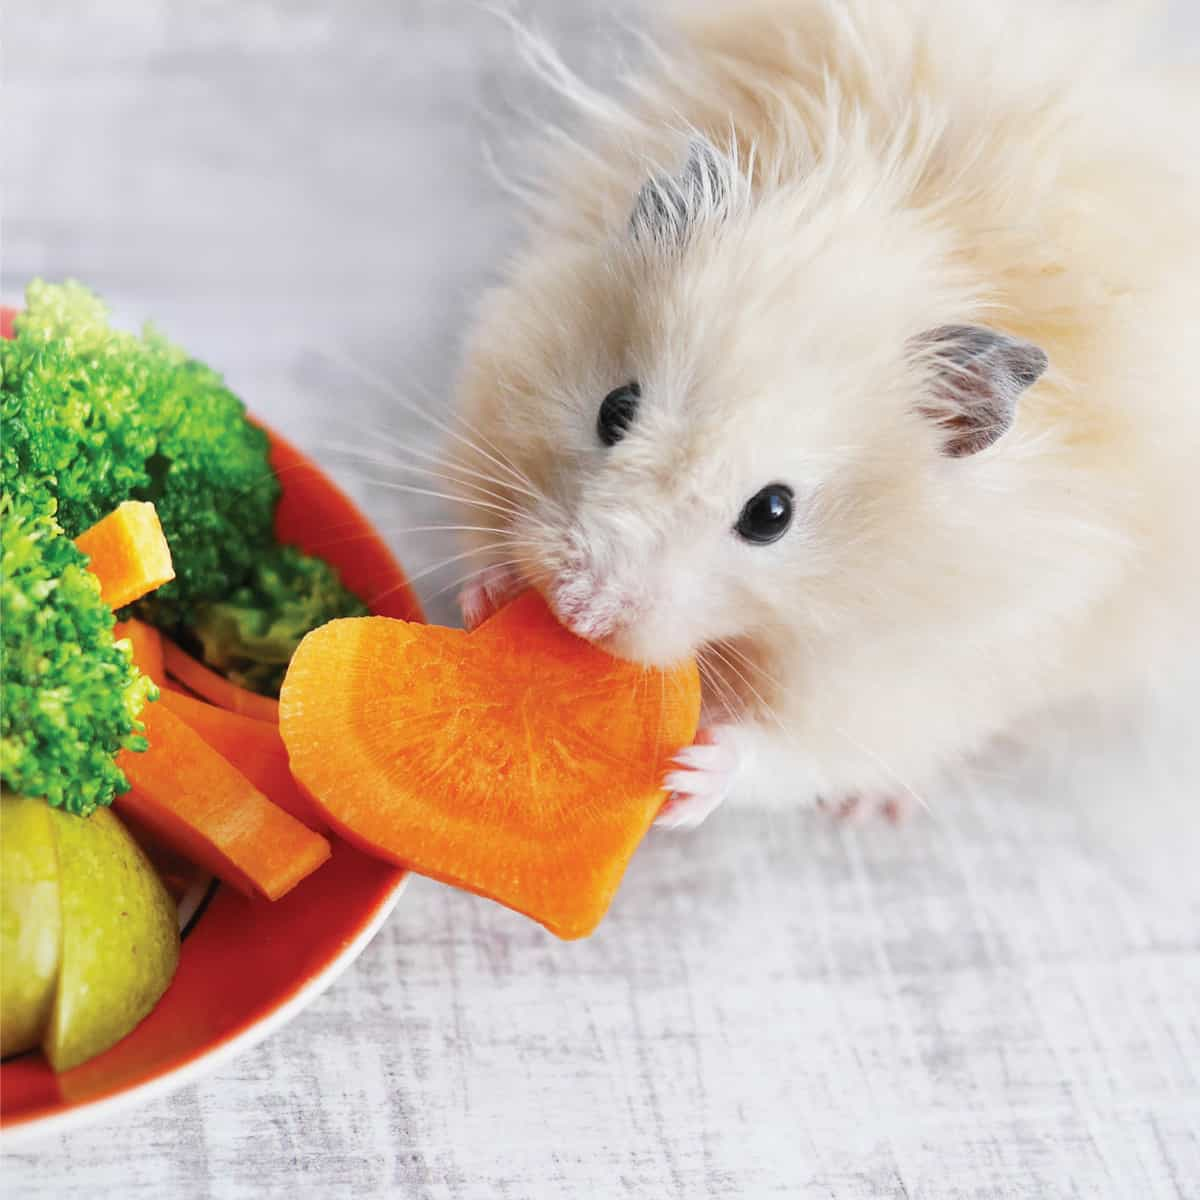 A fluffy hamster eats vegetables and fruits from an orange plate